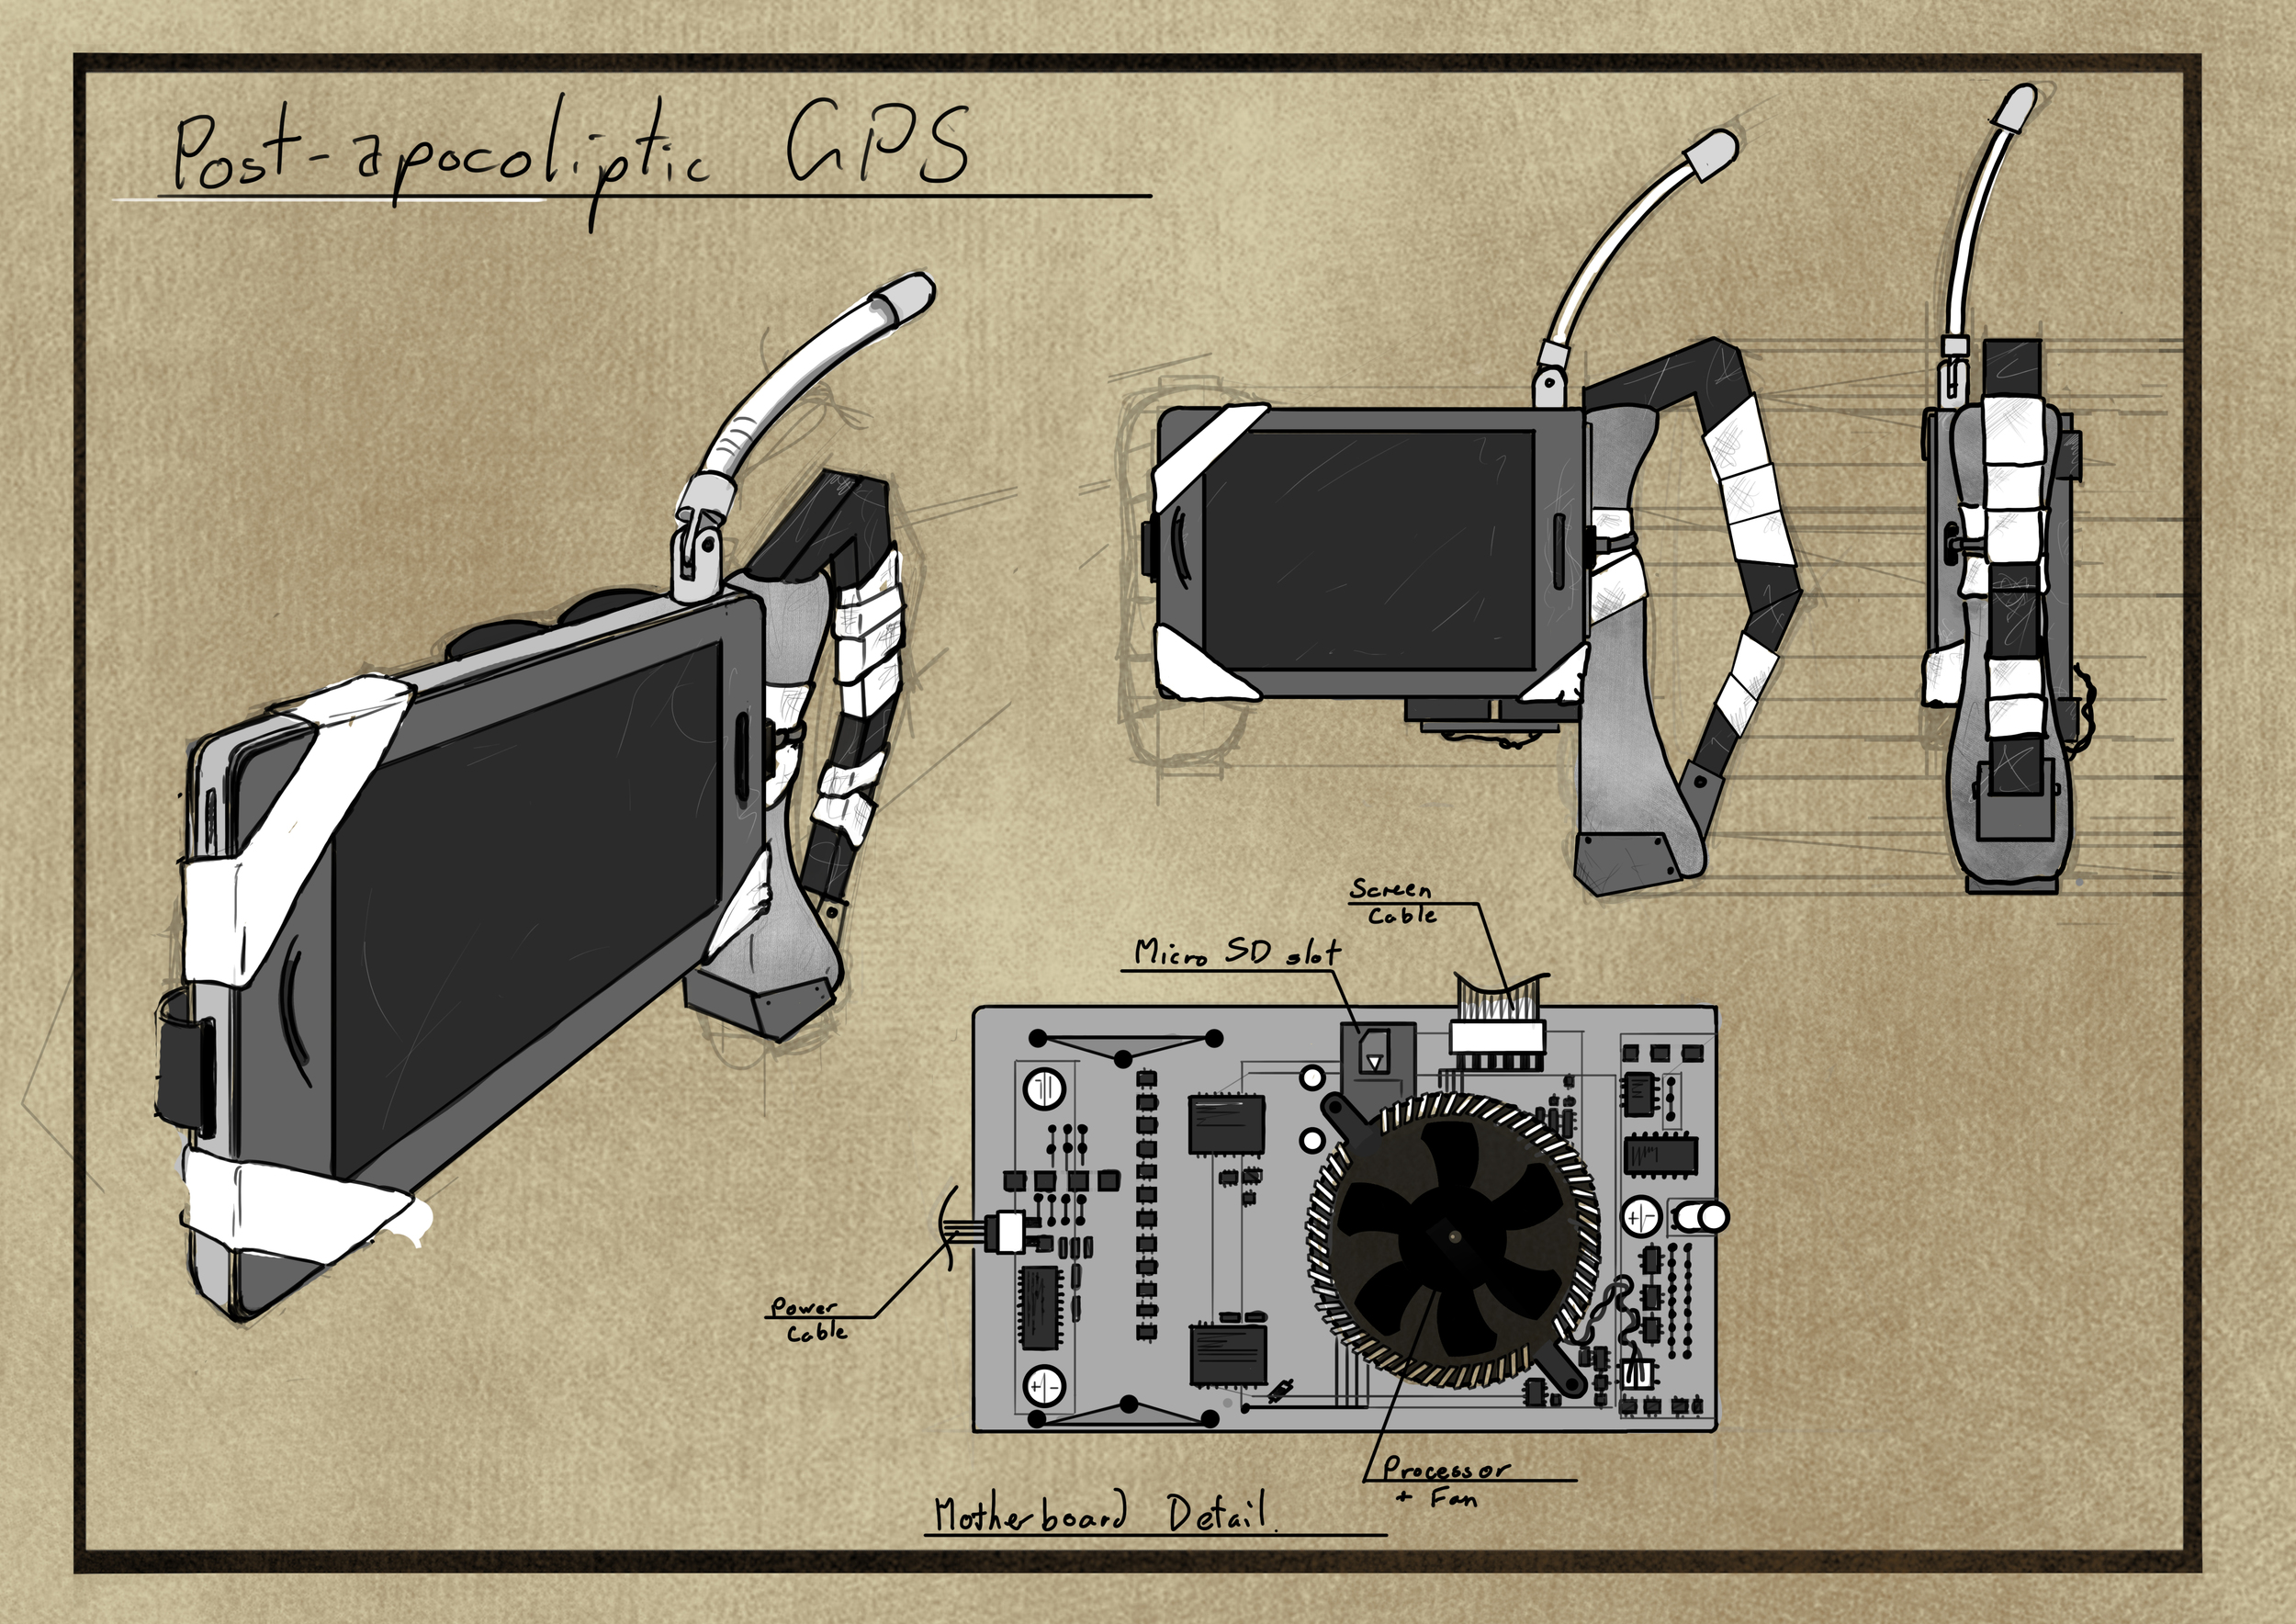 Concept for a handheld device.